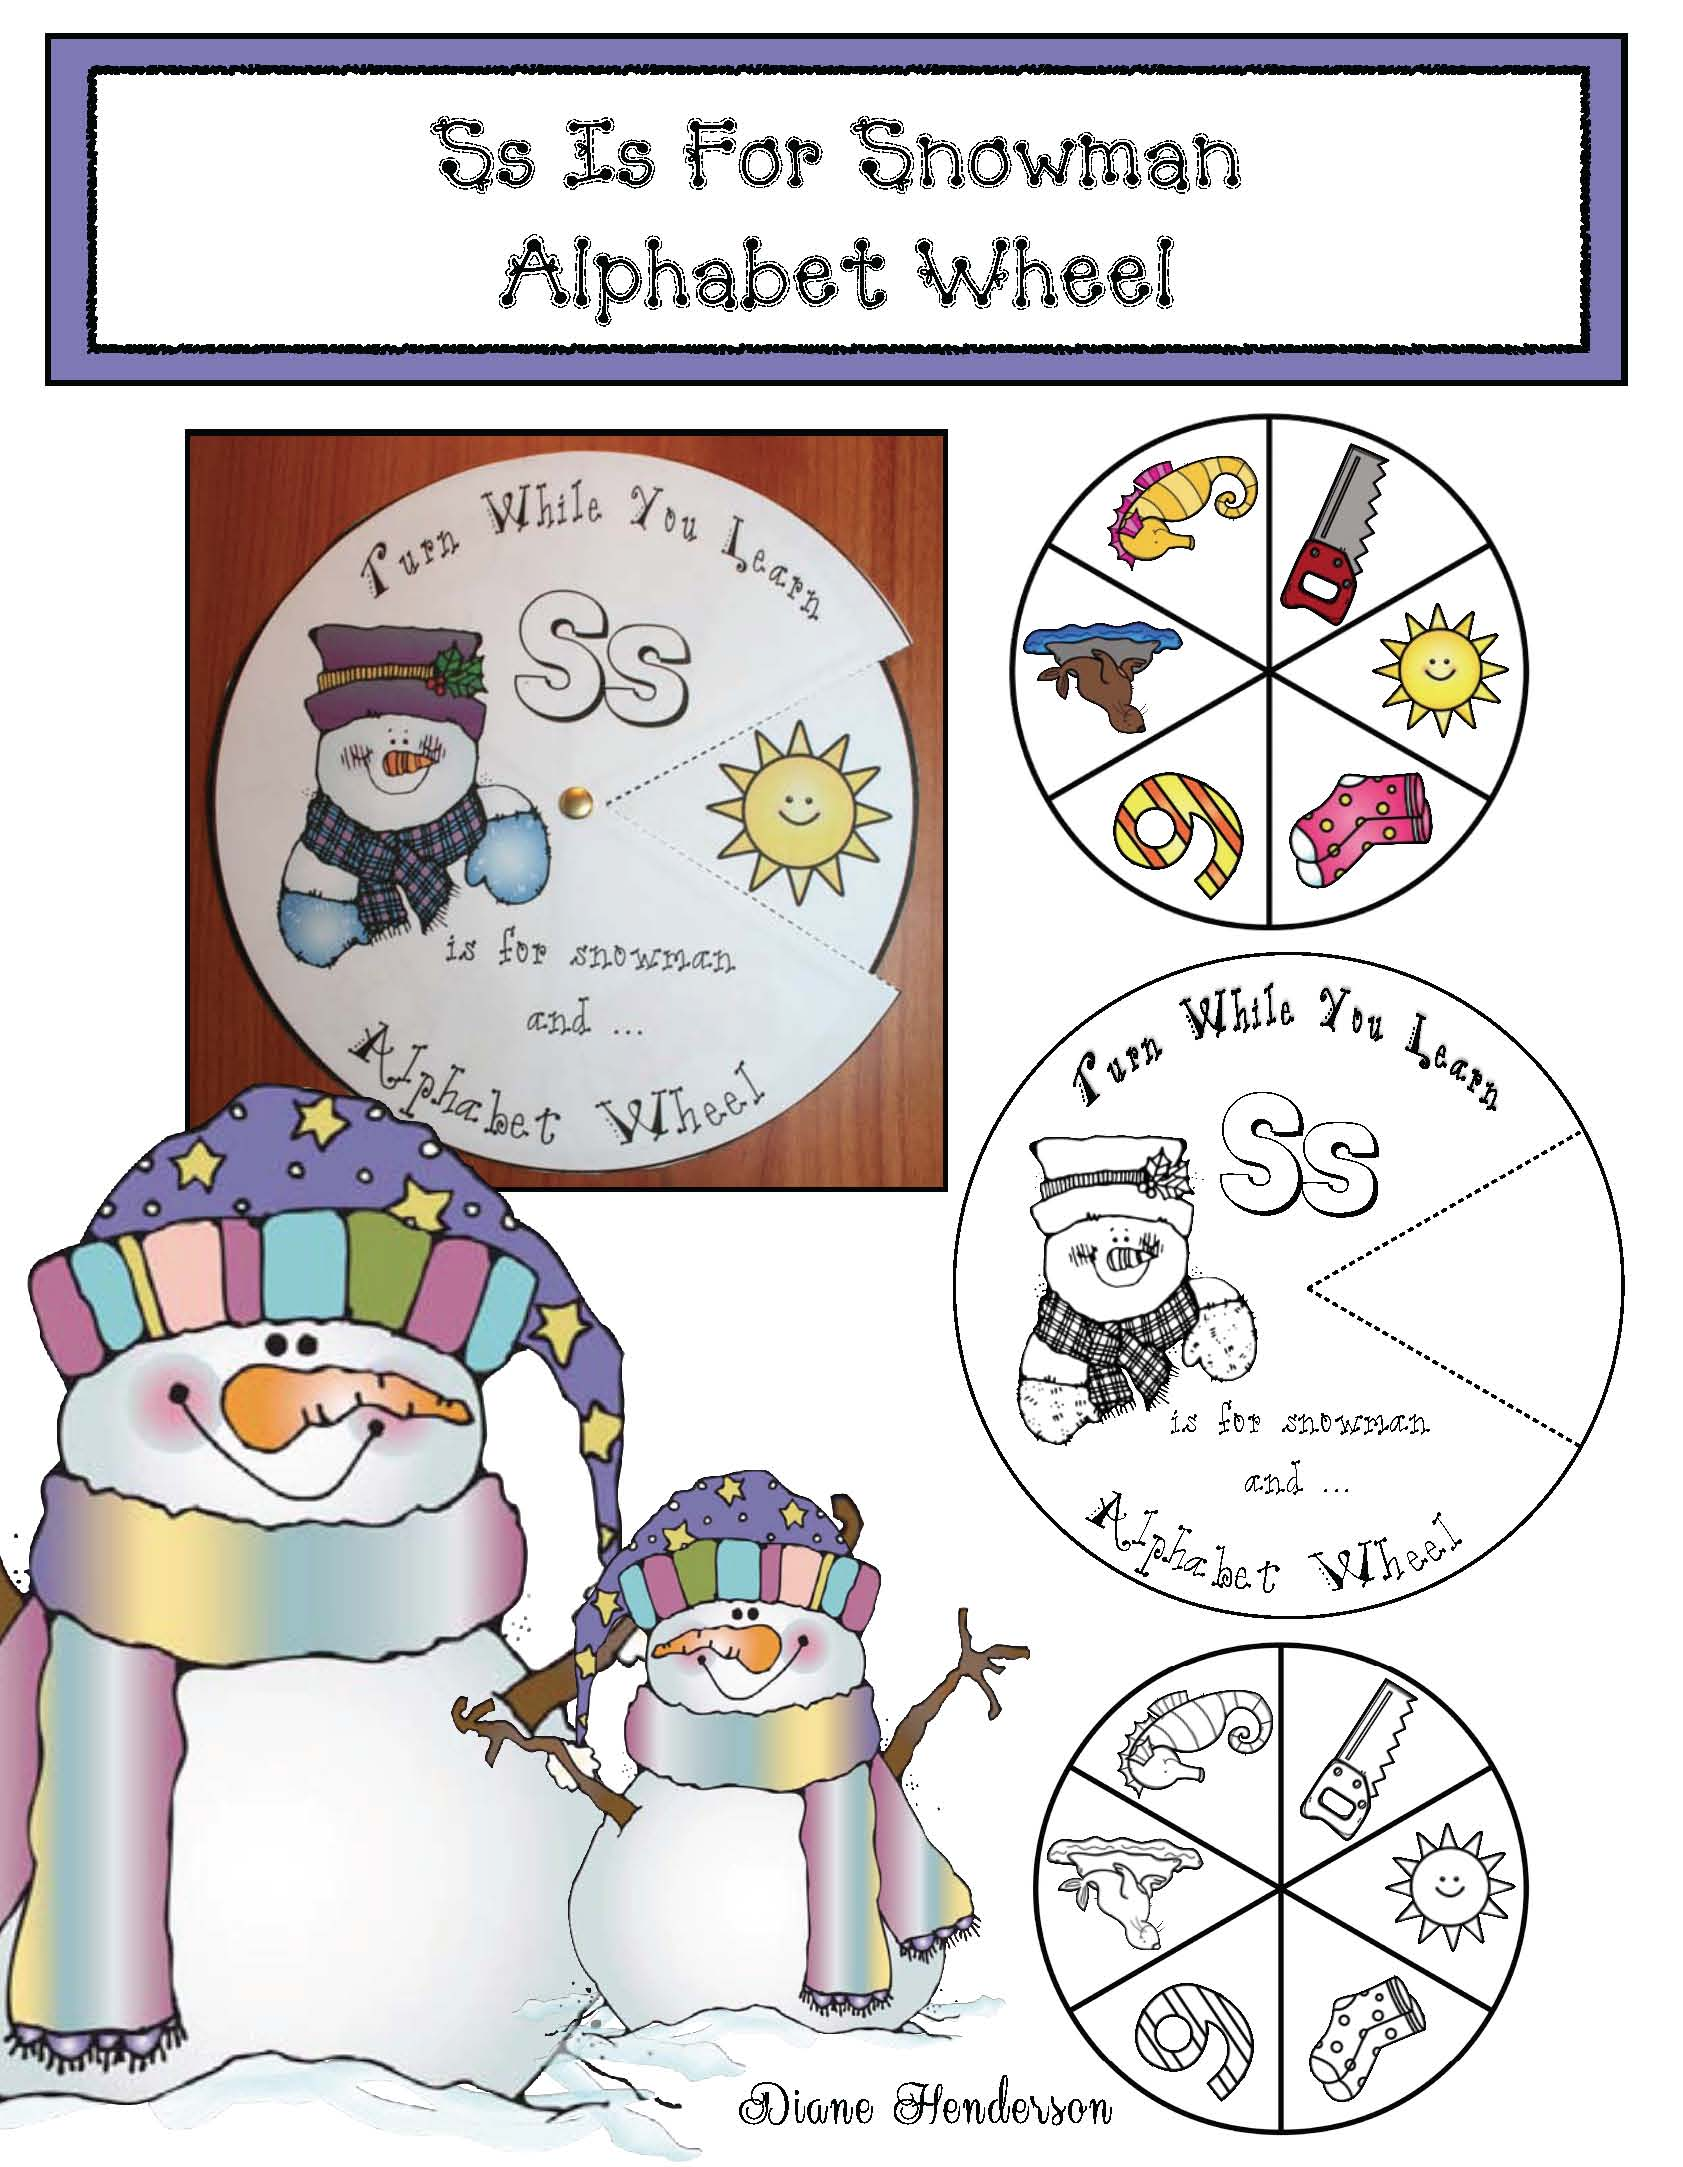 snowman activities, snowman crafts, January bulletin board ideas, snowman games, 2D shape activities, color word activities, color activities, alphabet wheels, alphabet activities, skip counting activities